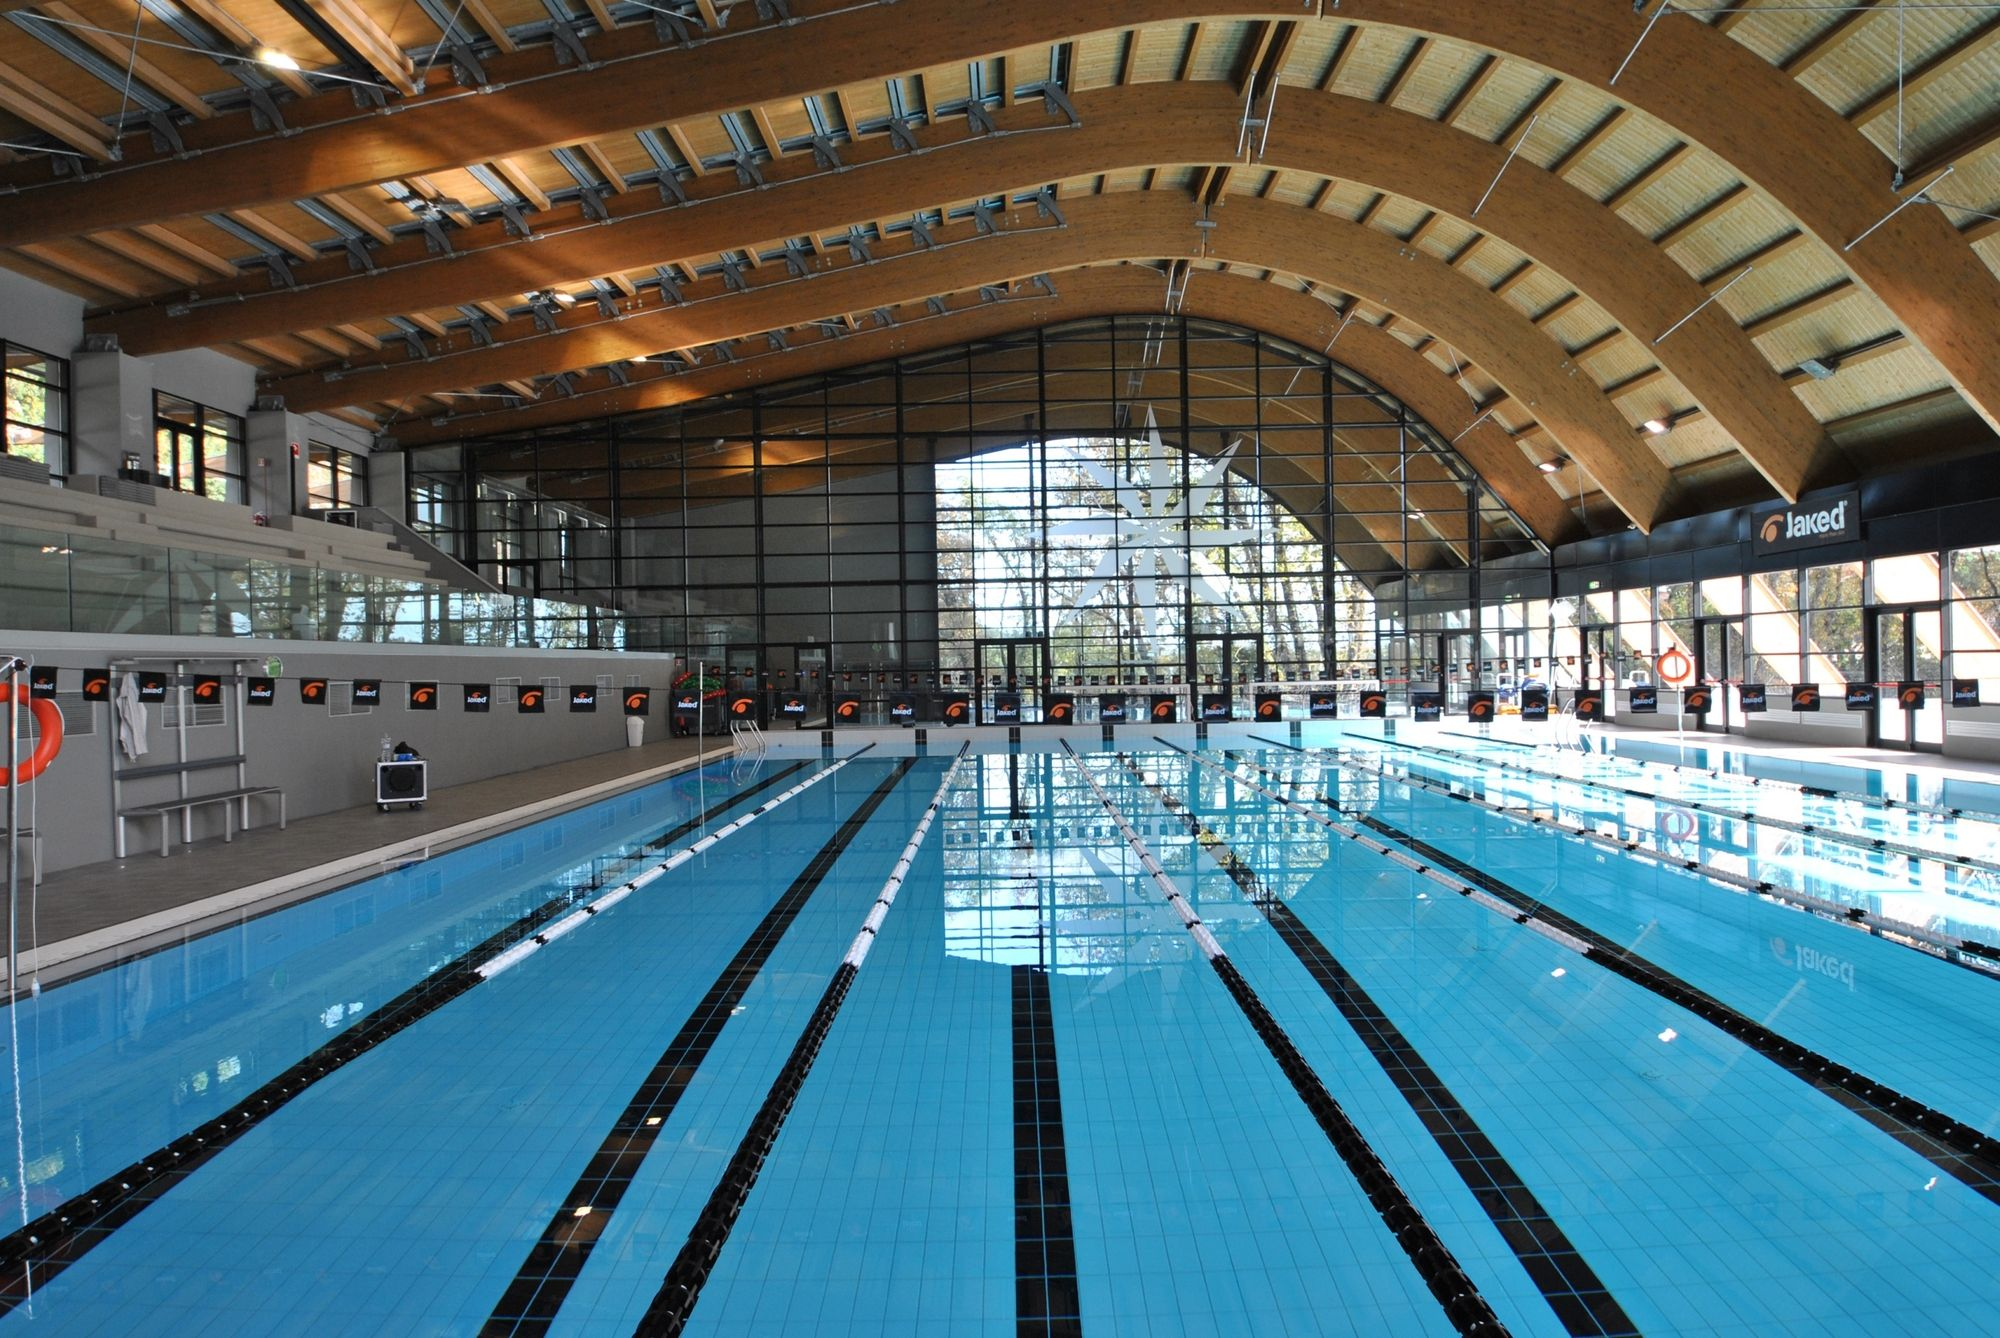 Club Deportivo Olgiata Lad Swimming Pool Architecture Dream